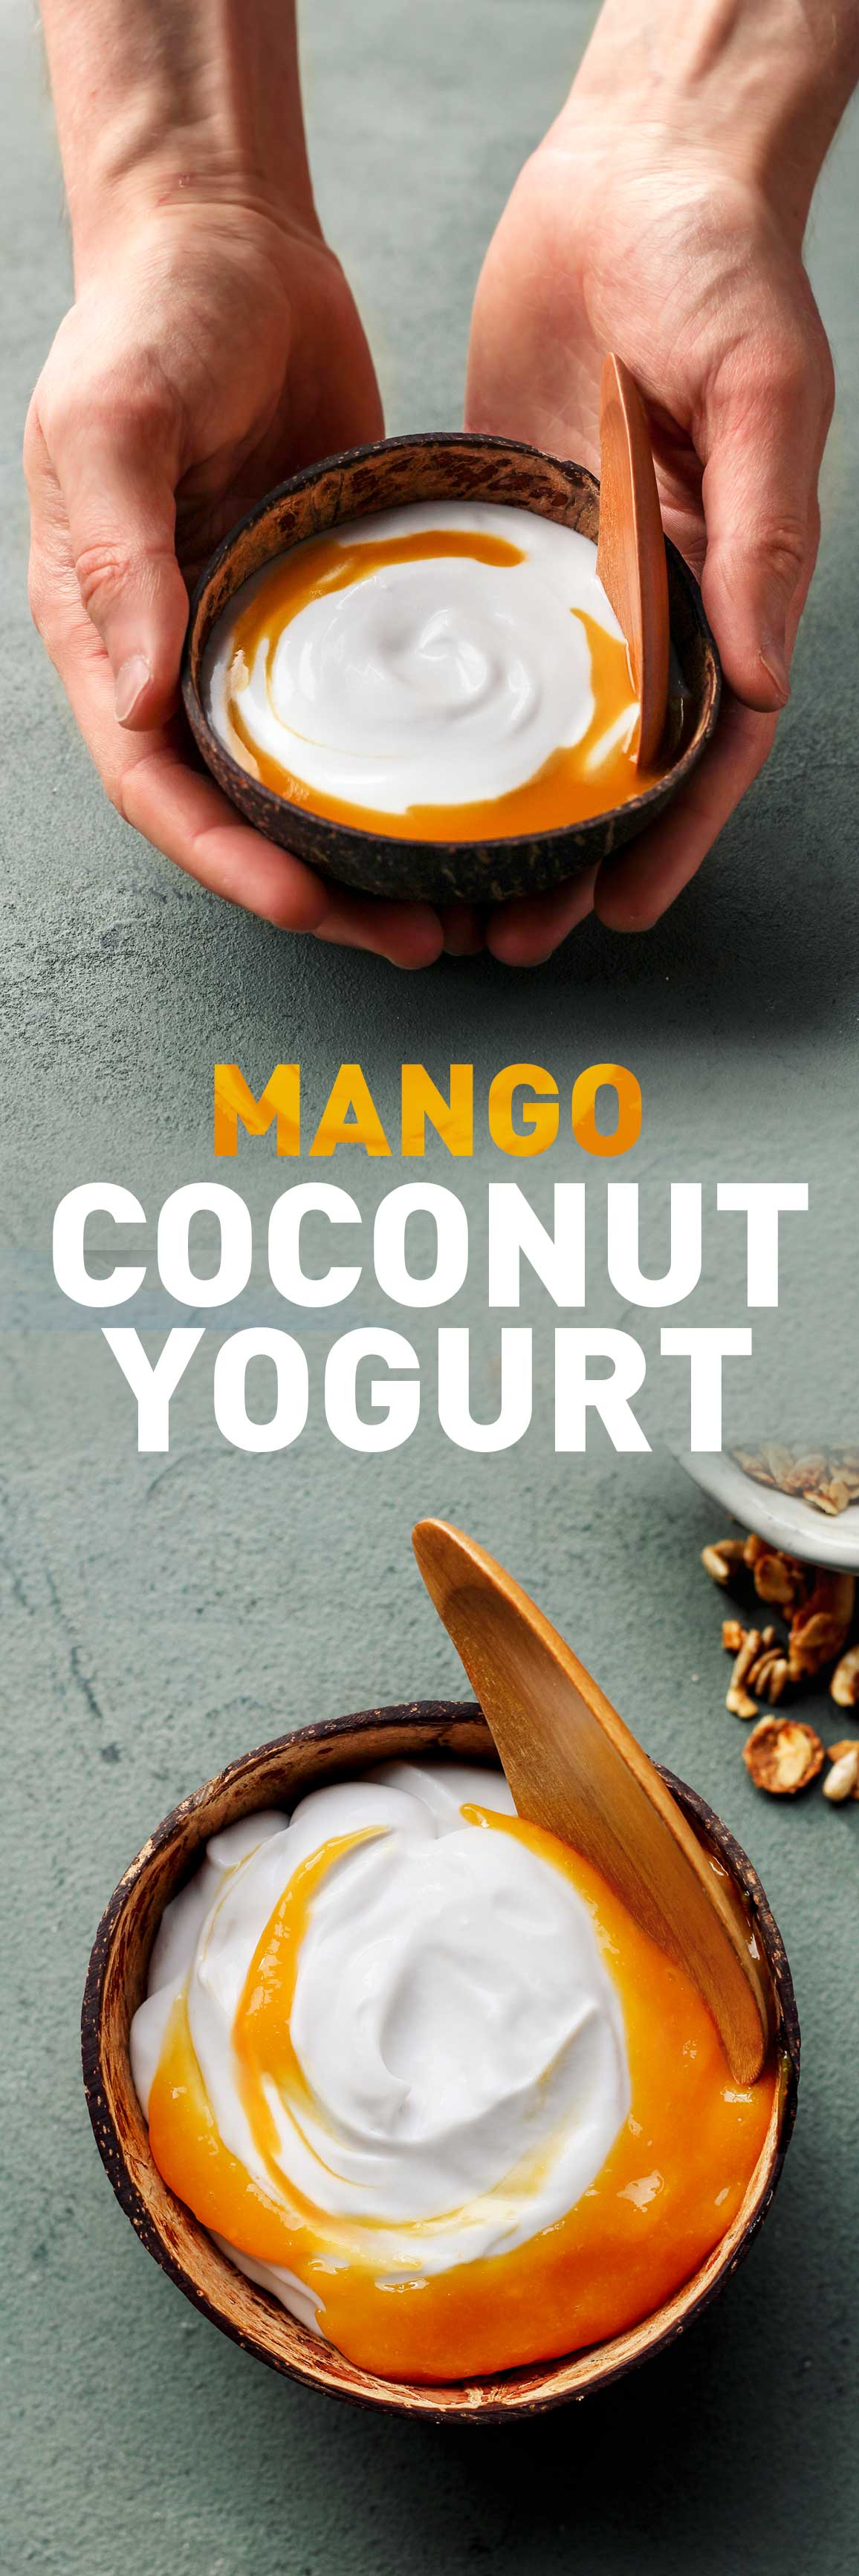 Mango Coconut Yogurt